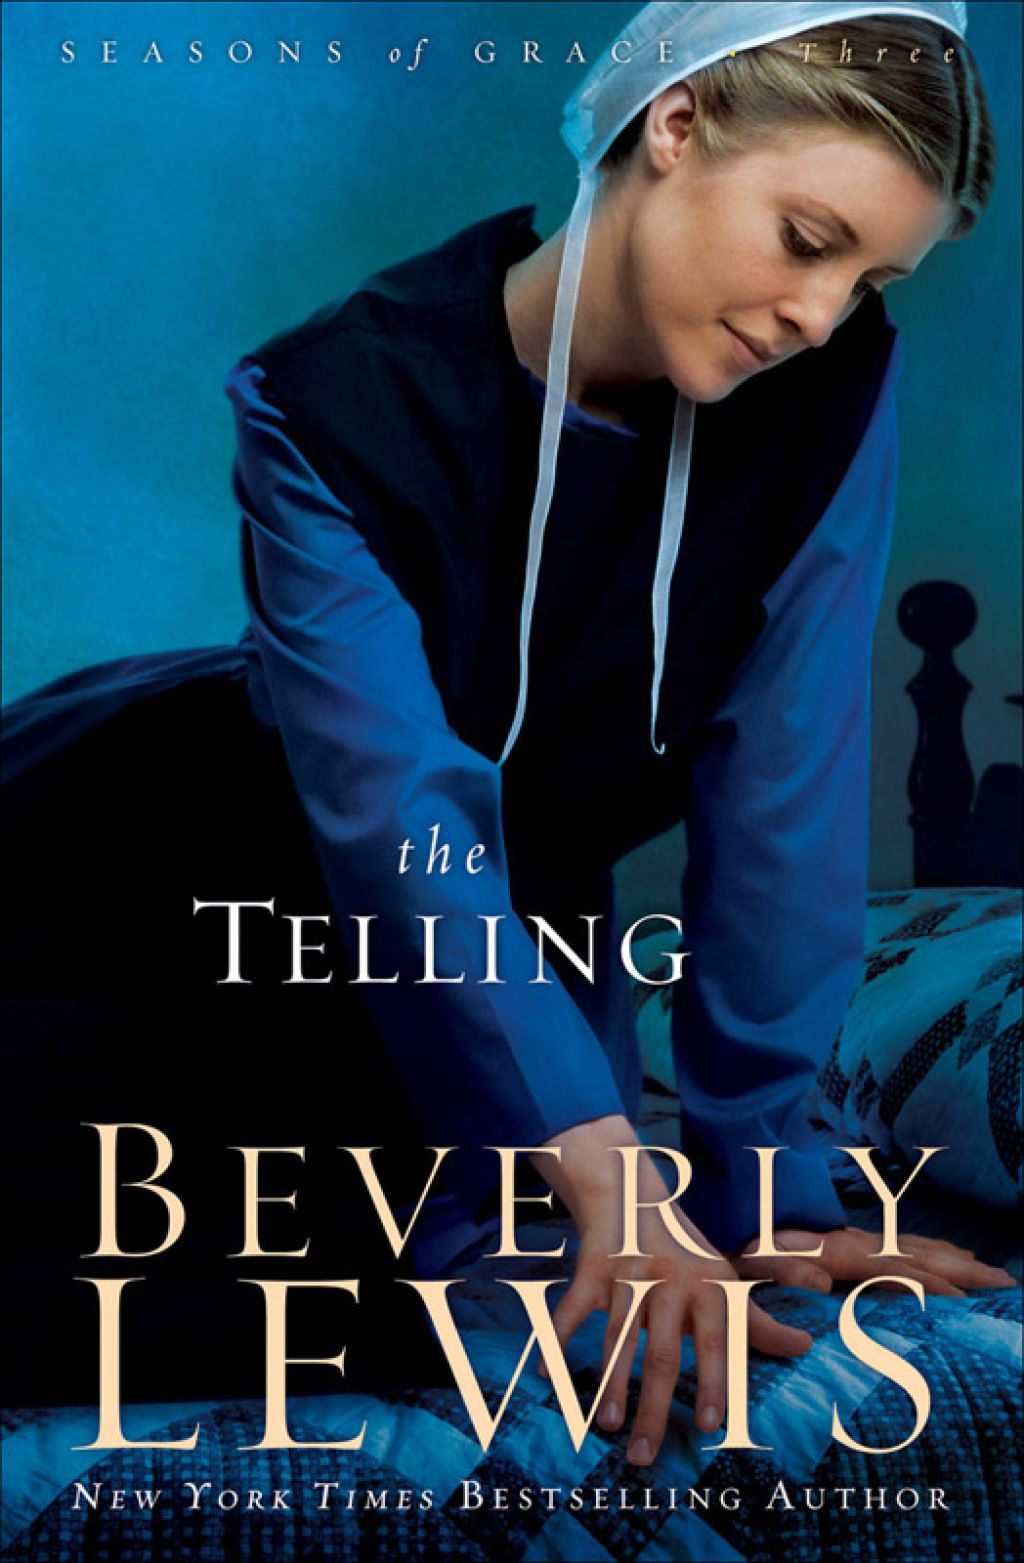 The telling ebook beverly lewis amish books